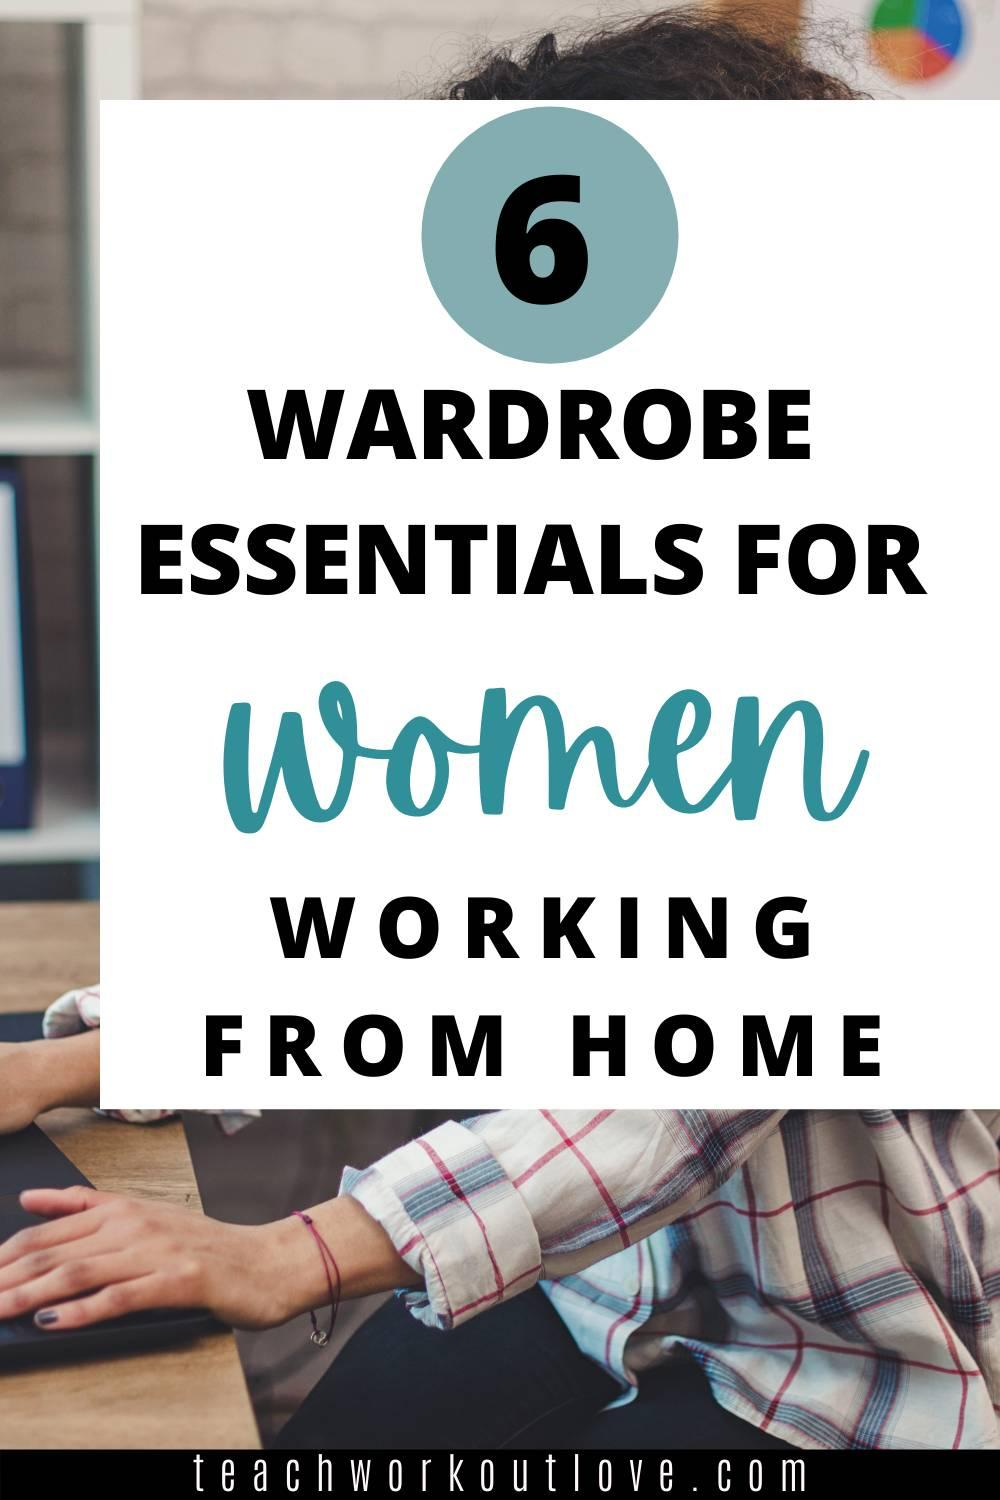 Have you joined the work from home group? Here's six wardrobe essentials that women who are working from home need: